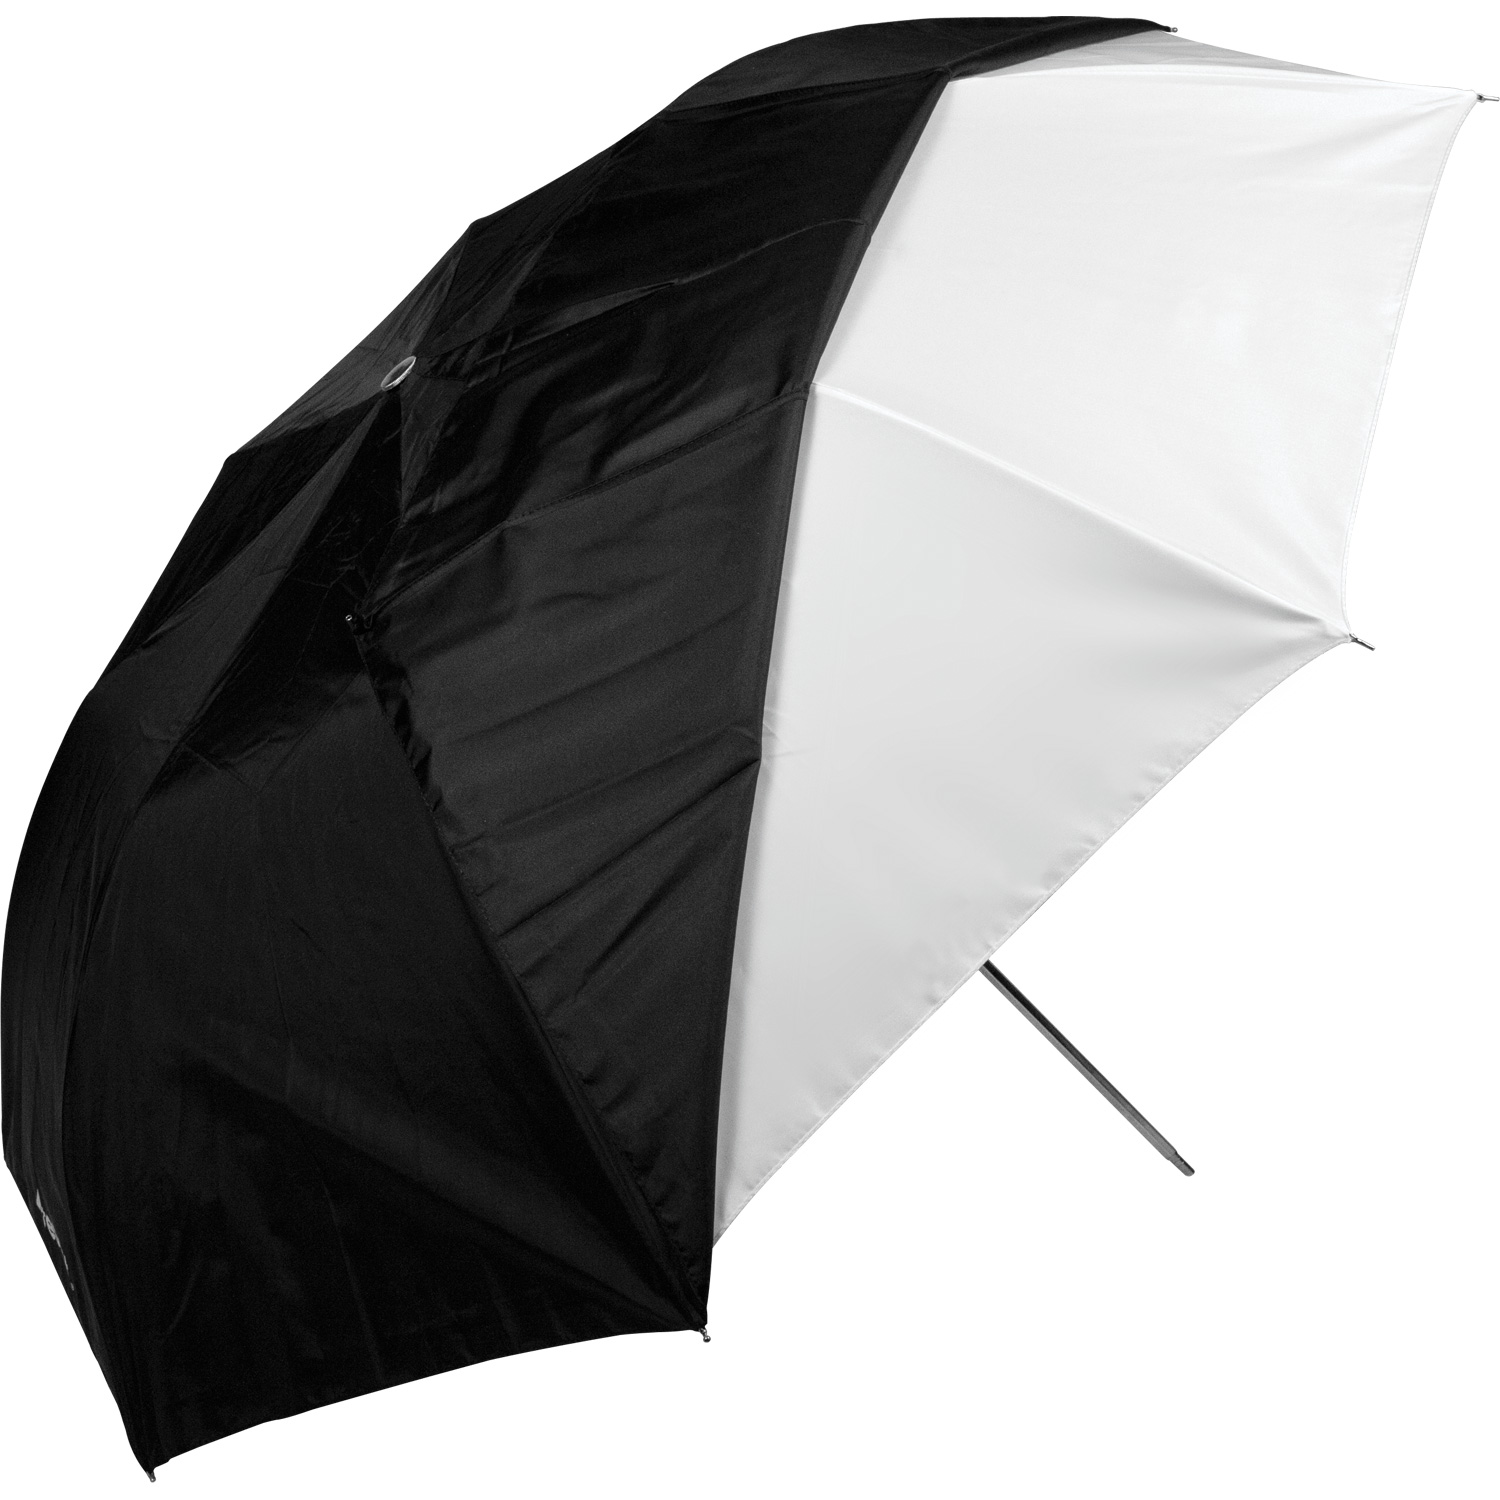 43-in. Optical White Satin Collapsible Umbrella with Removable Black Cover